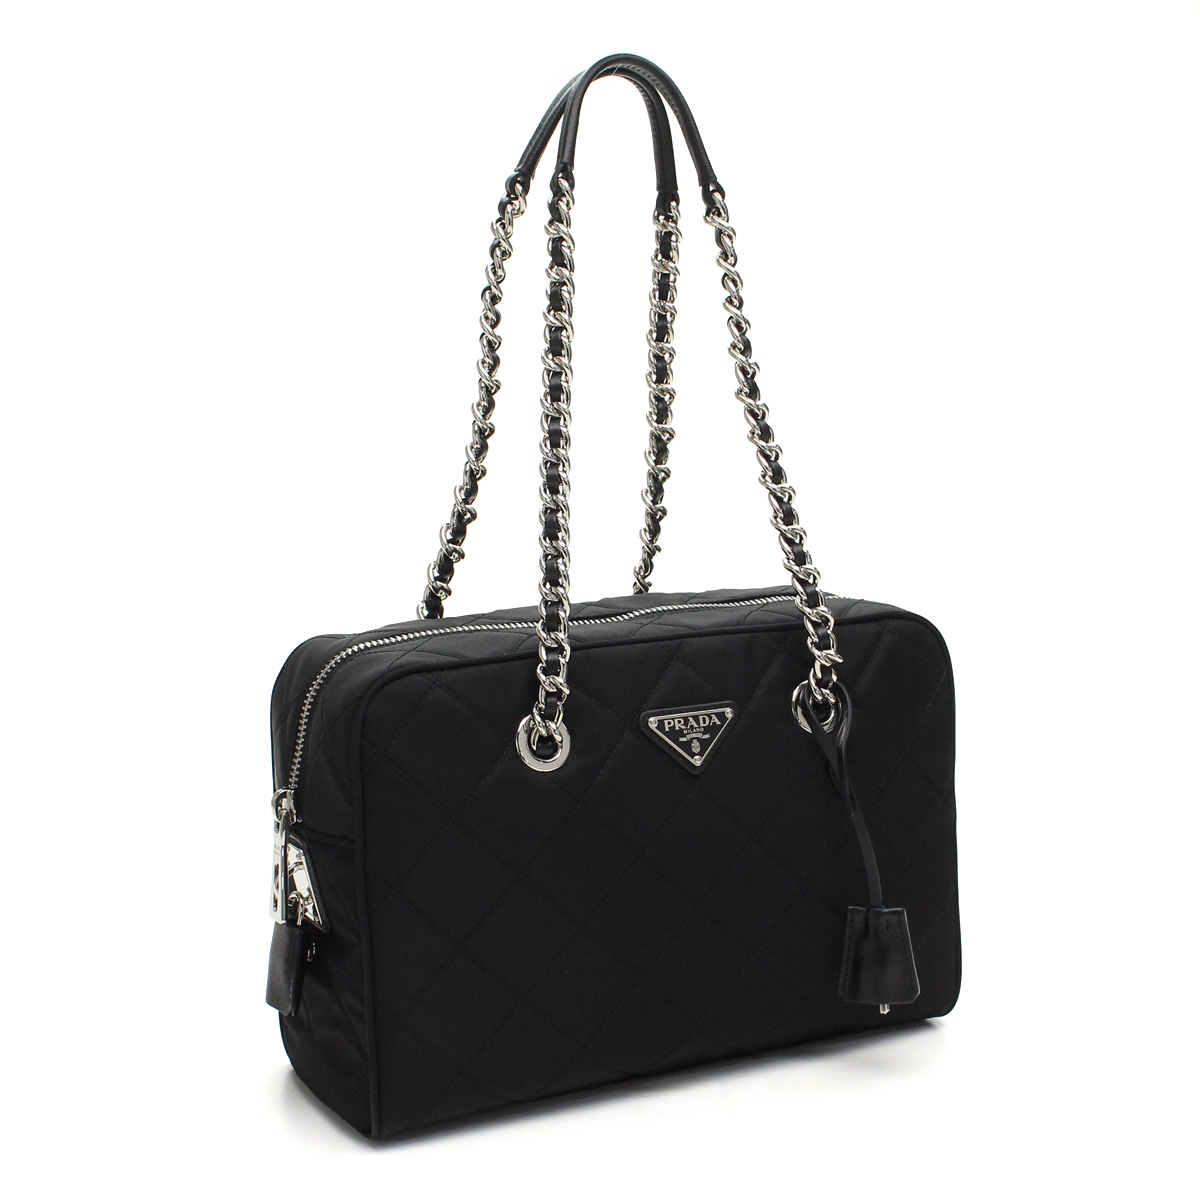 d654d58abc16 Bighit The total brand wholesale: Prada outlet PRADA (OUTLET) Boston  1BB903-O-2AS3-F0002 NERO black( taxfree/send by EMS/authentic/A brand new  item ) ...